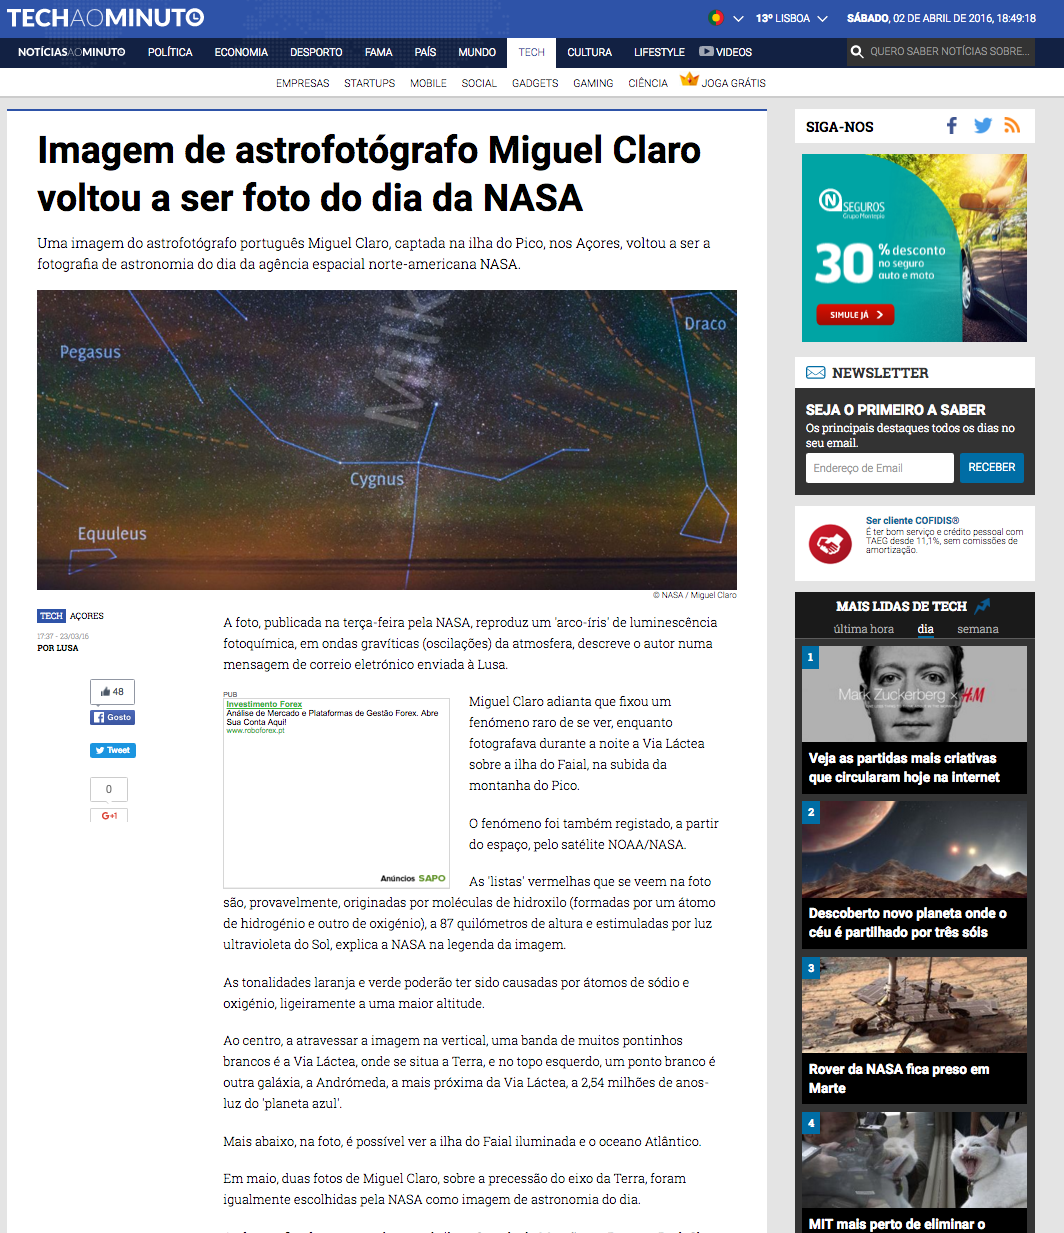 APOD-Abril-Press-NoticiasAoMinuto